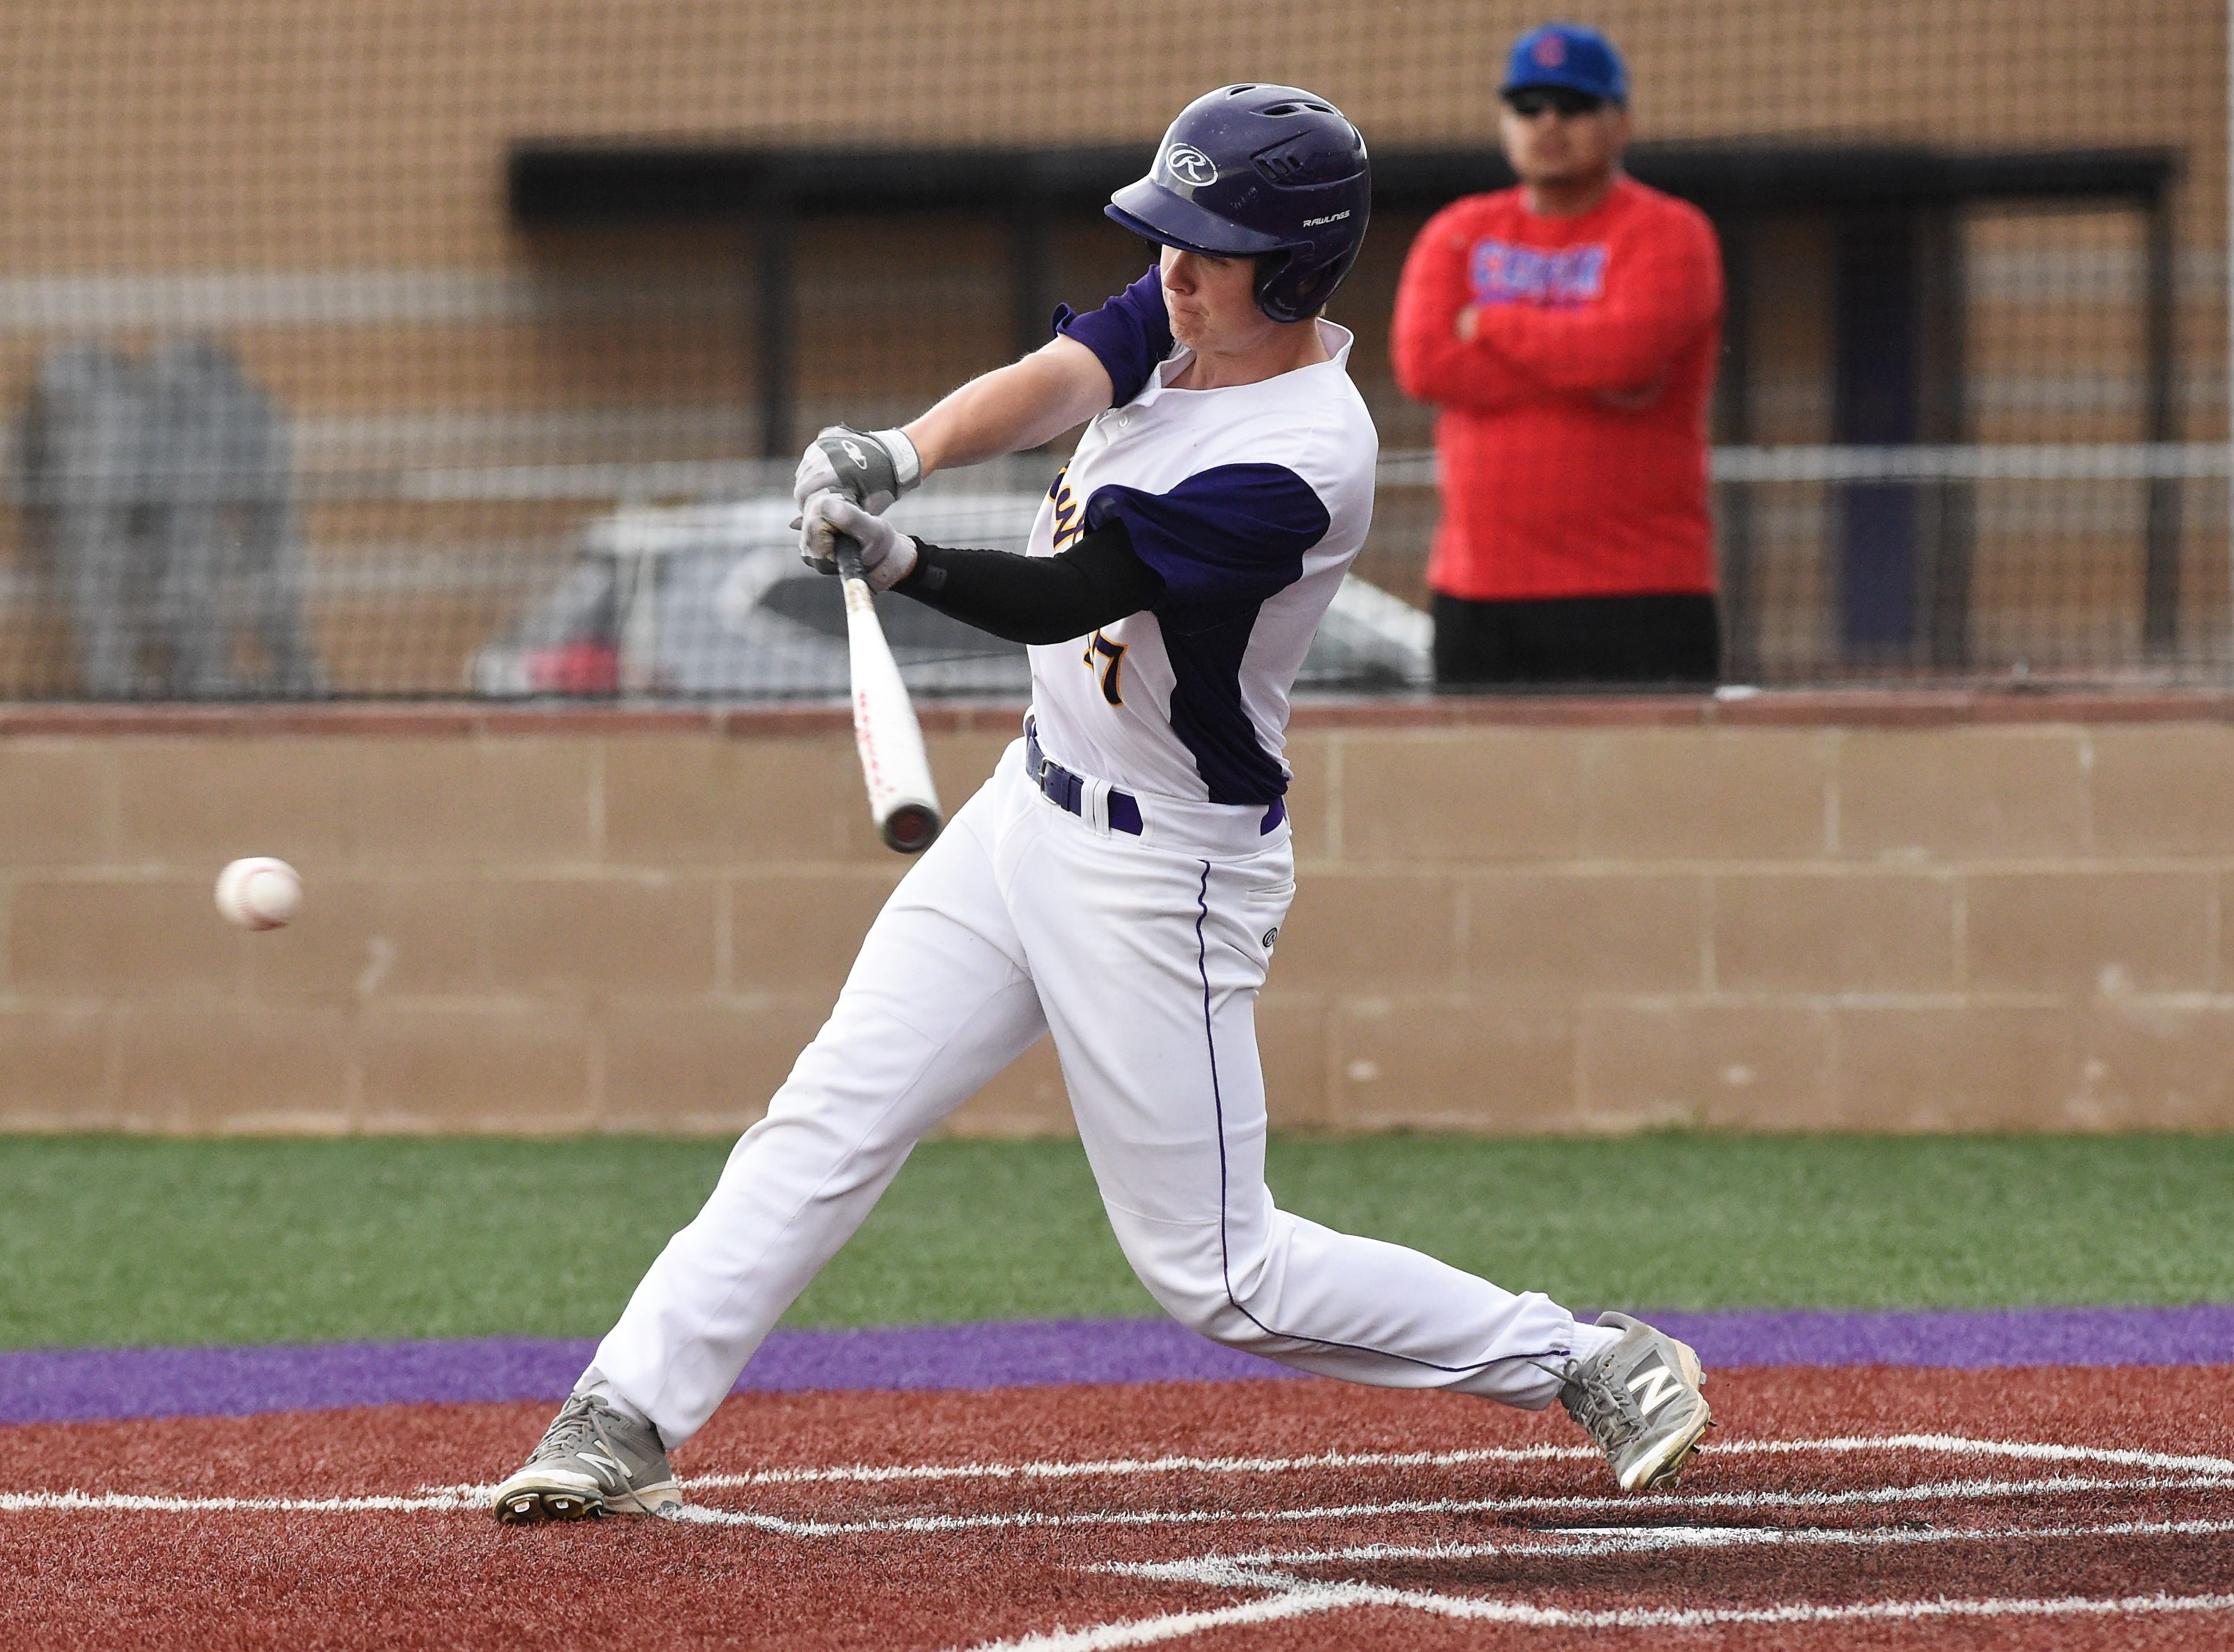 Wylie's Reed Hughes (27) connects on a pinch hit single against Cooper at Bulldog Field on Friday, April 12, 2019. The Bulldogs won 4-3.